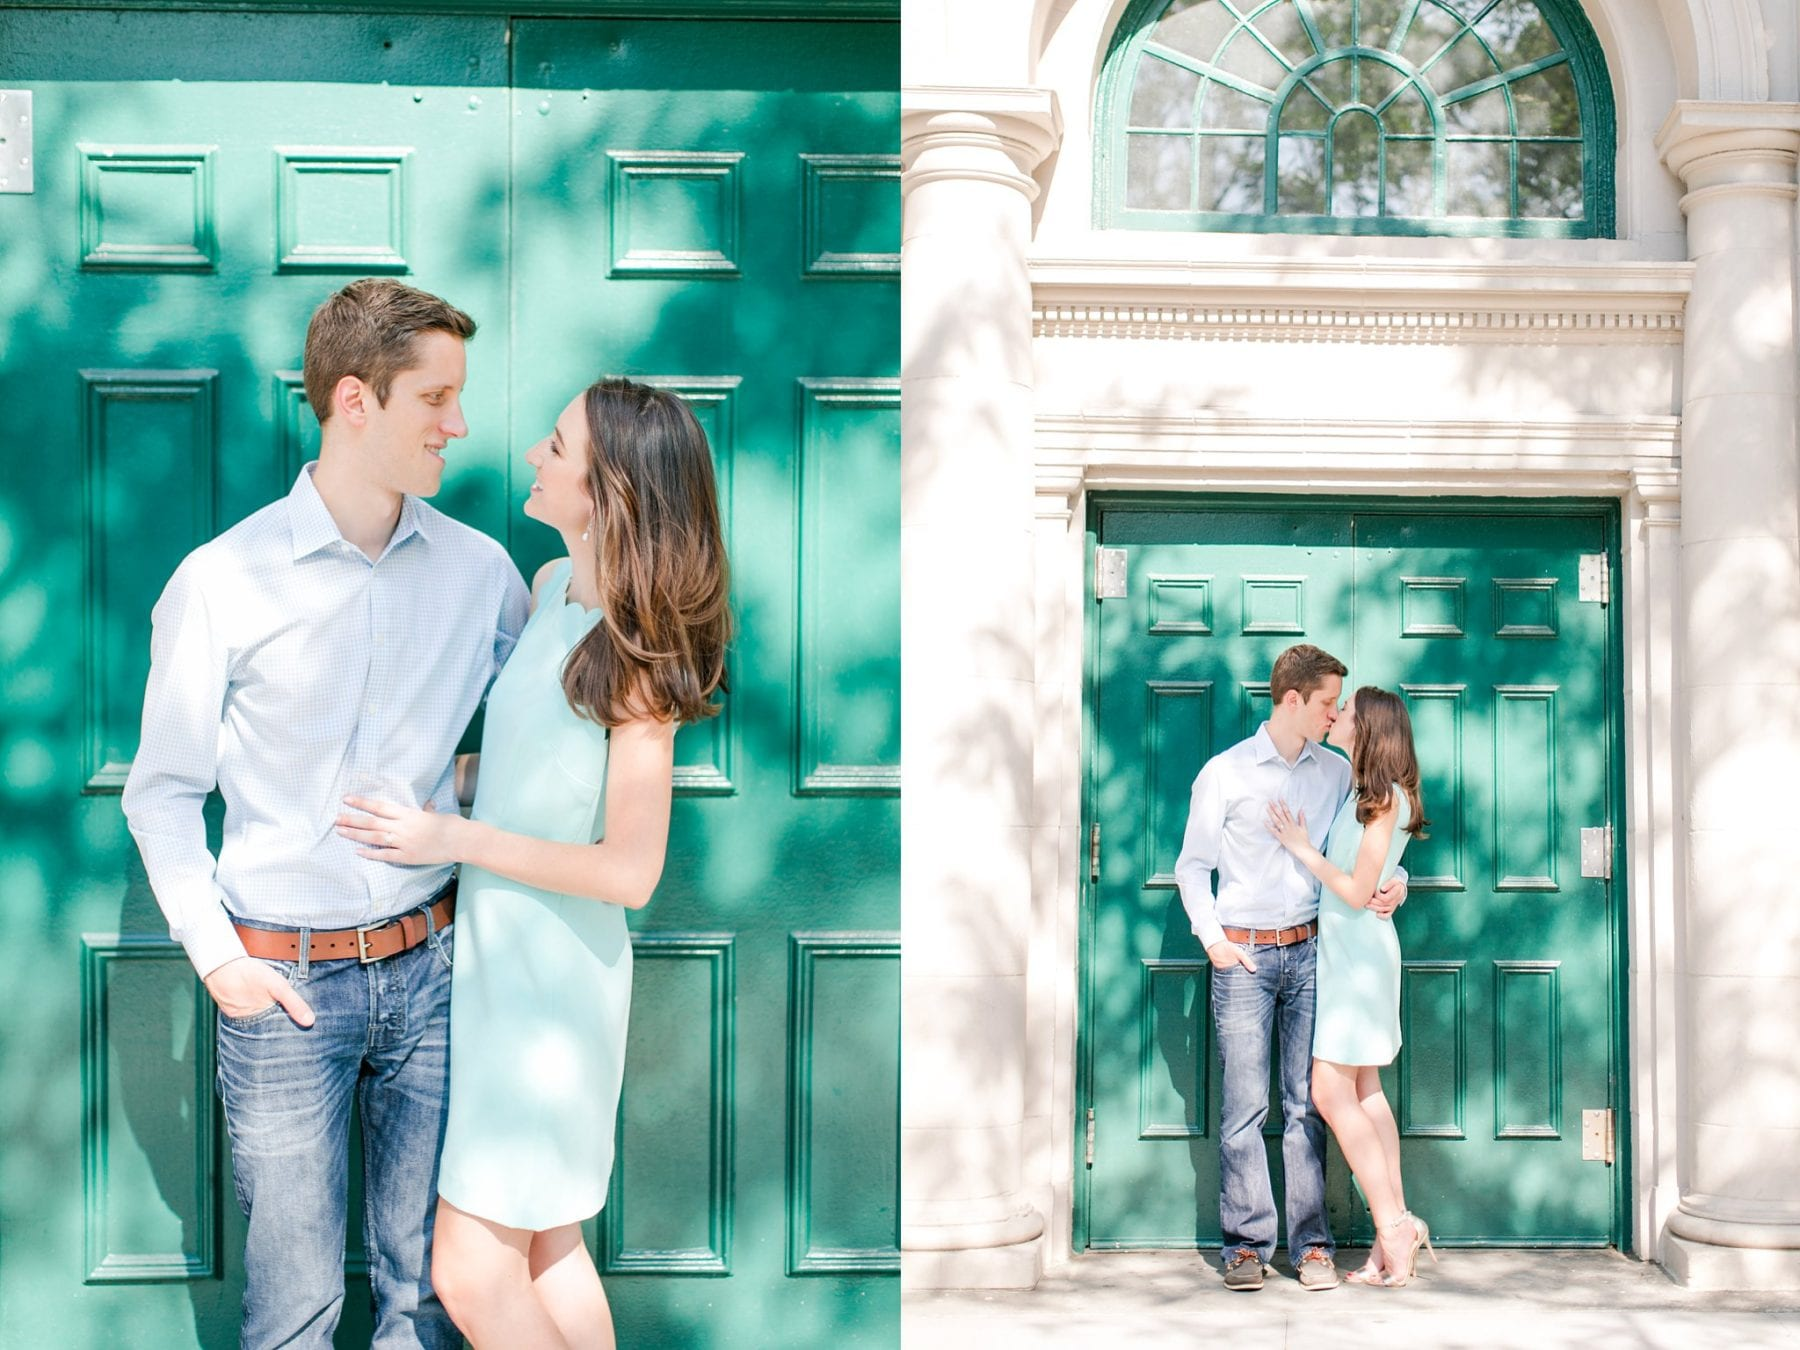 West Village Central Park Engagement Photos NYC Wedding Photographer Megan Kelsey Photography-47.jpg